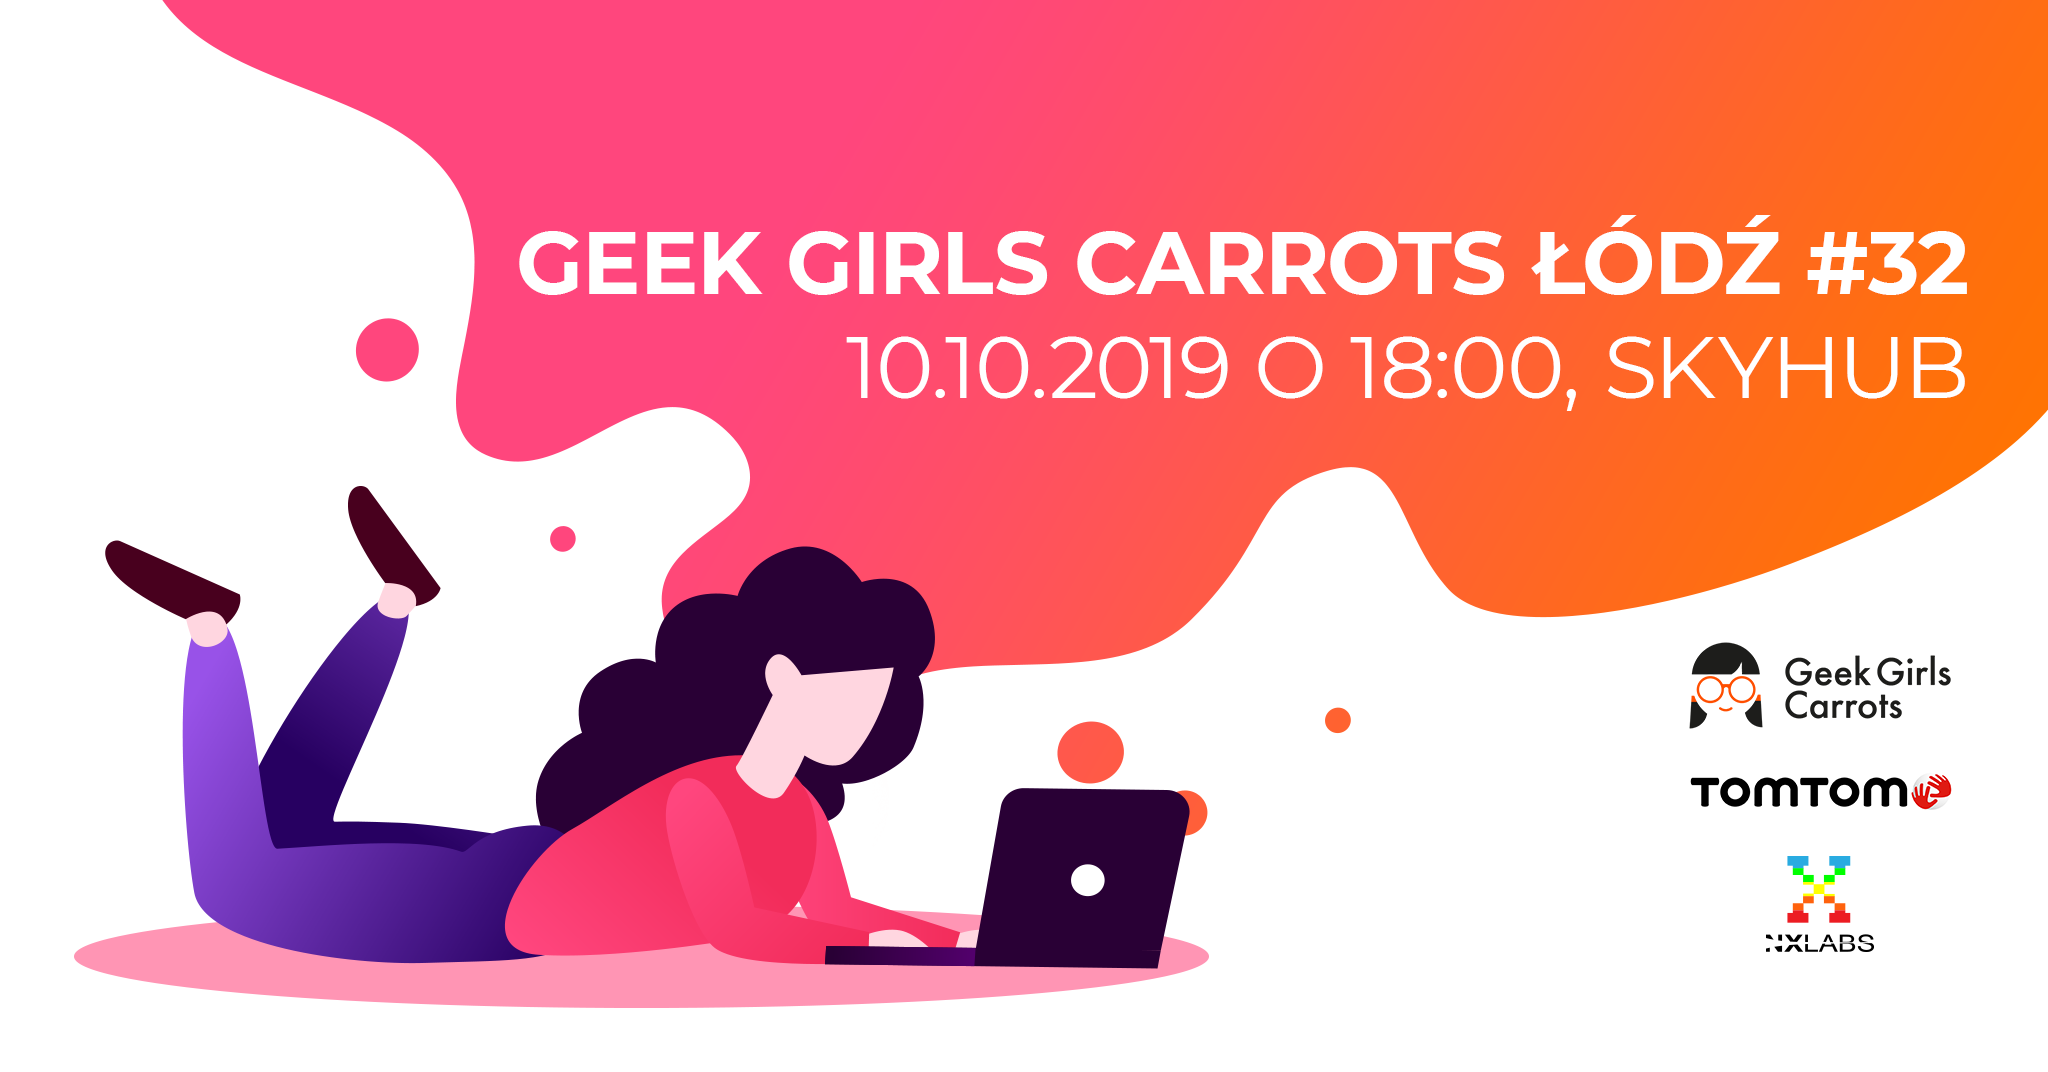 geek-girls-carrots-lodz-32